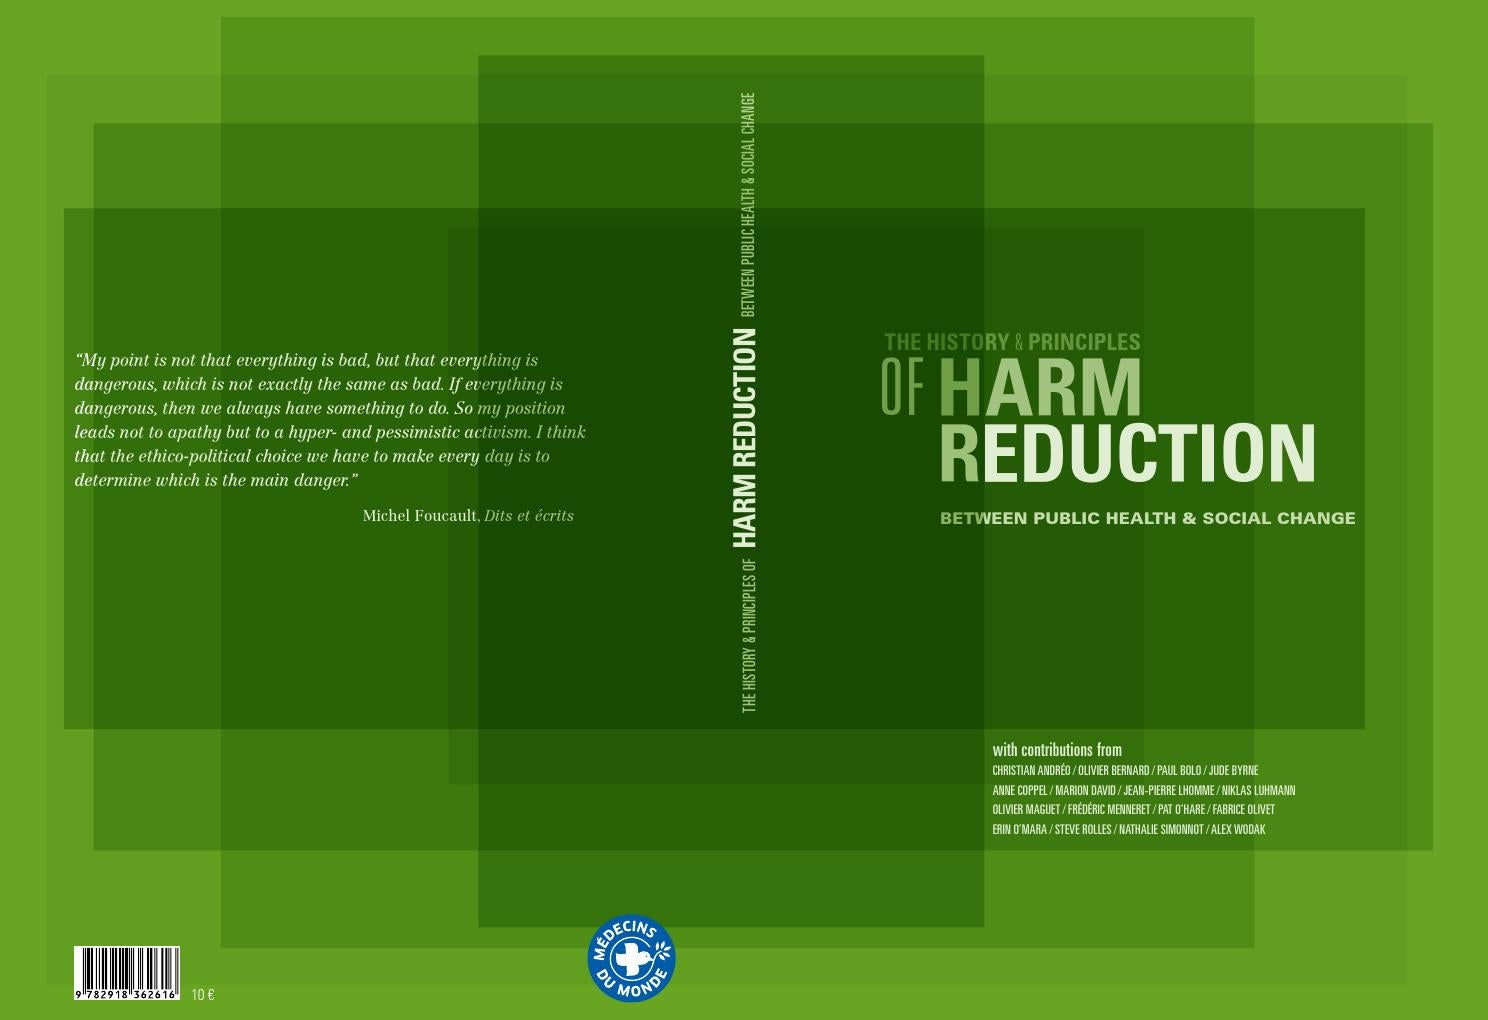 The history and Principles of Harm Reduction by Médecins du